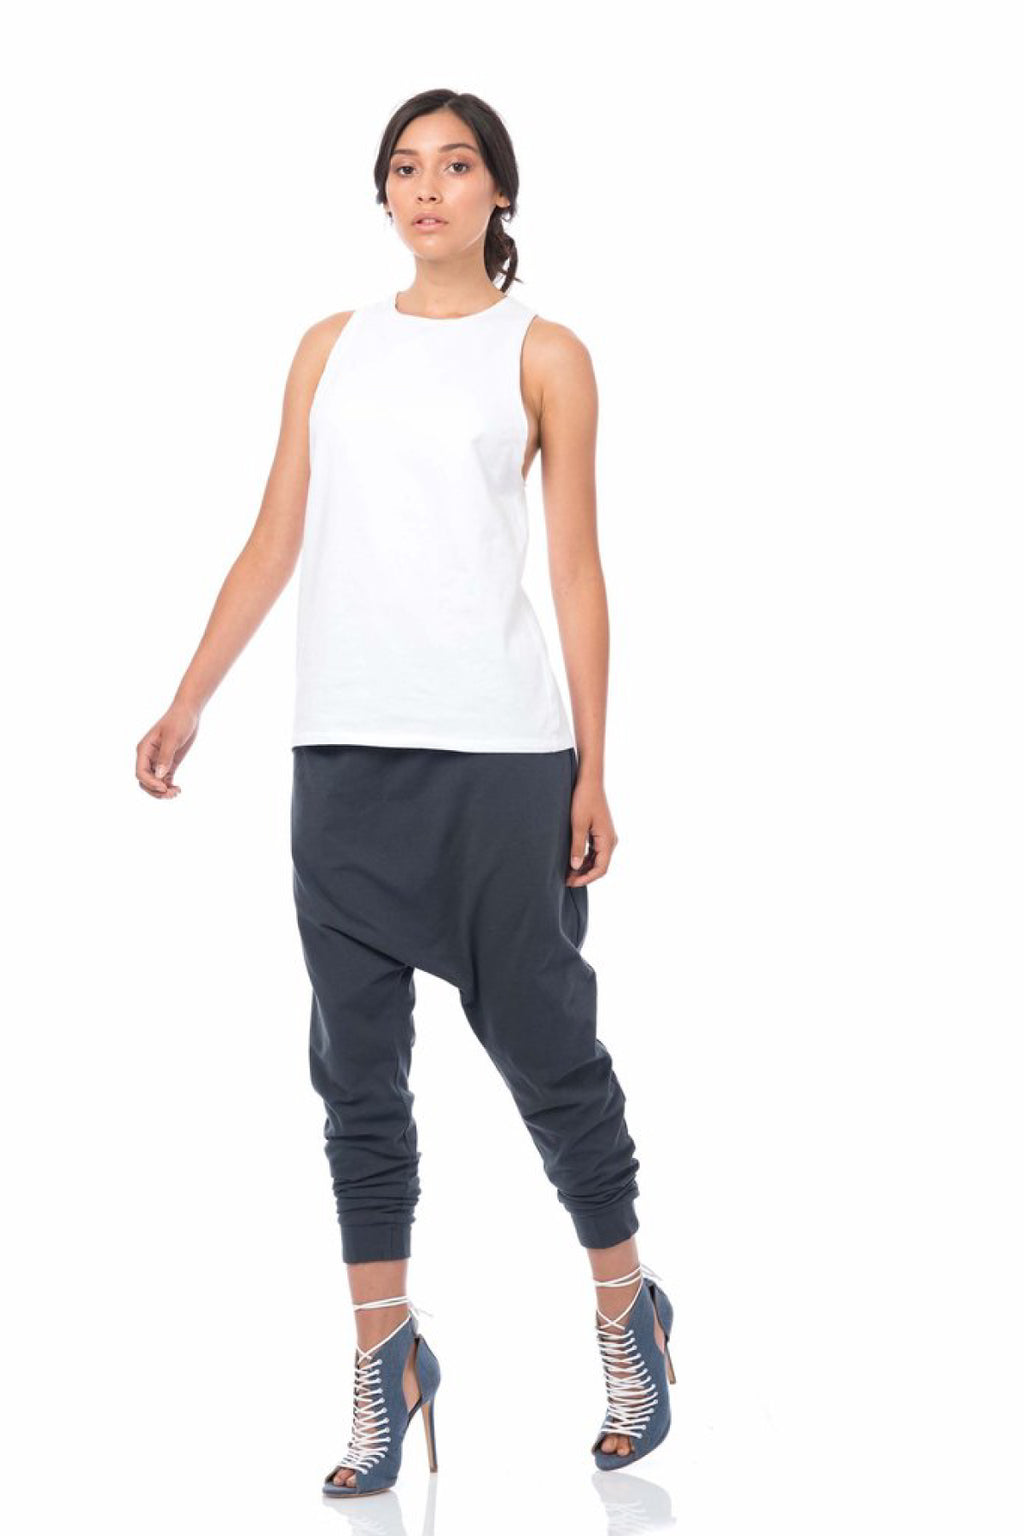 Raw Edge Singlet Shirts + tops Ethical Sustainable Vegan Organic Australian fashion womens clothes